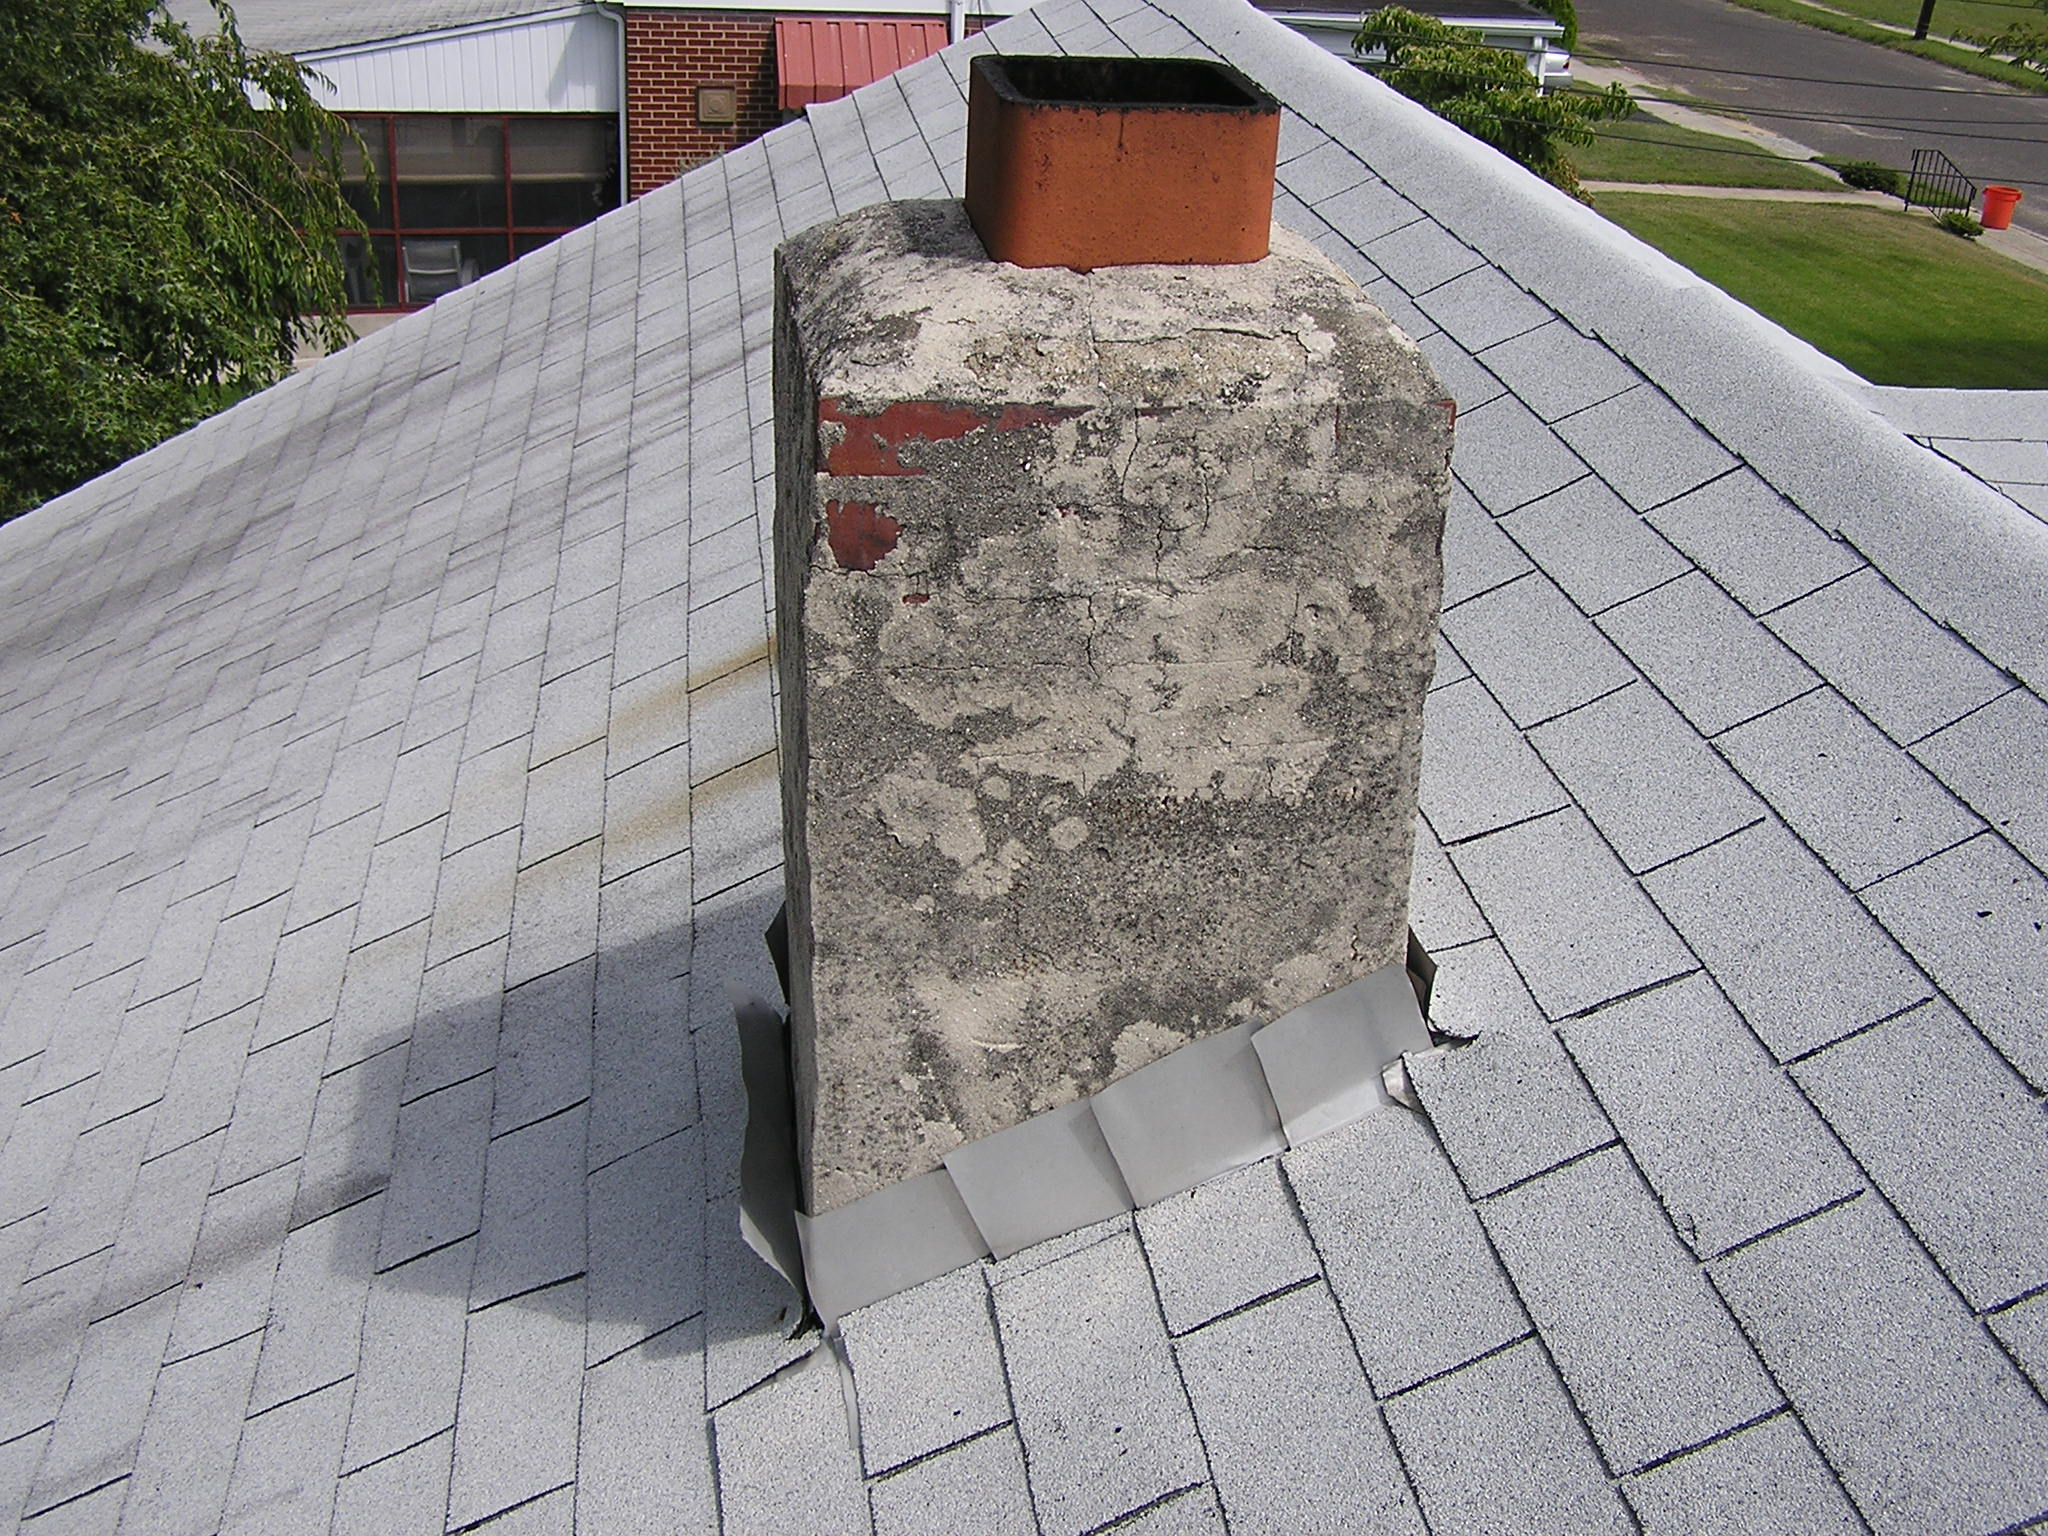 Chimney image - what is visible upon roof inspection.